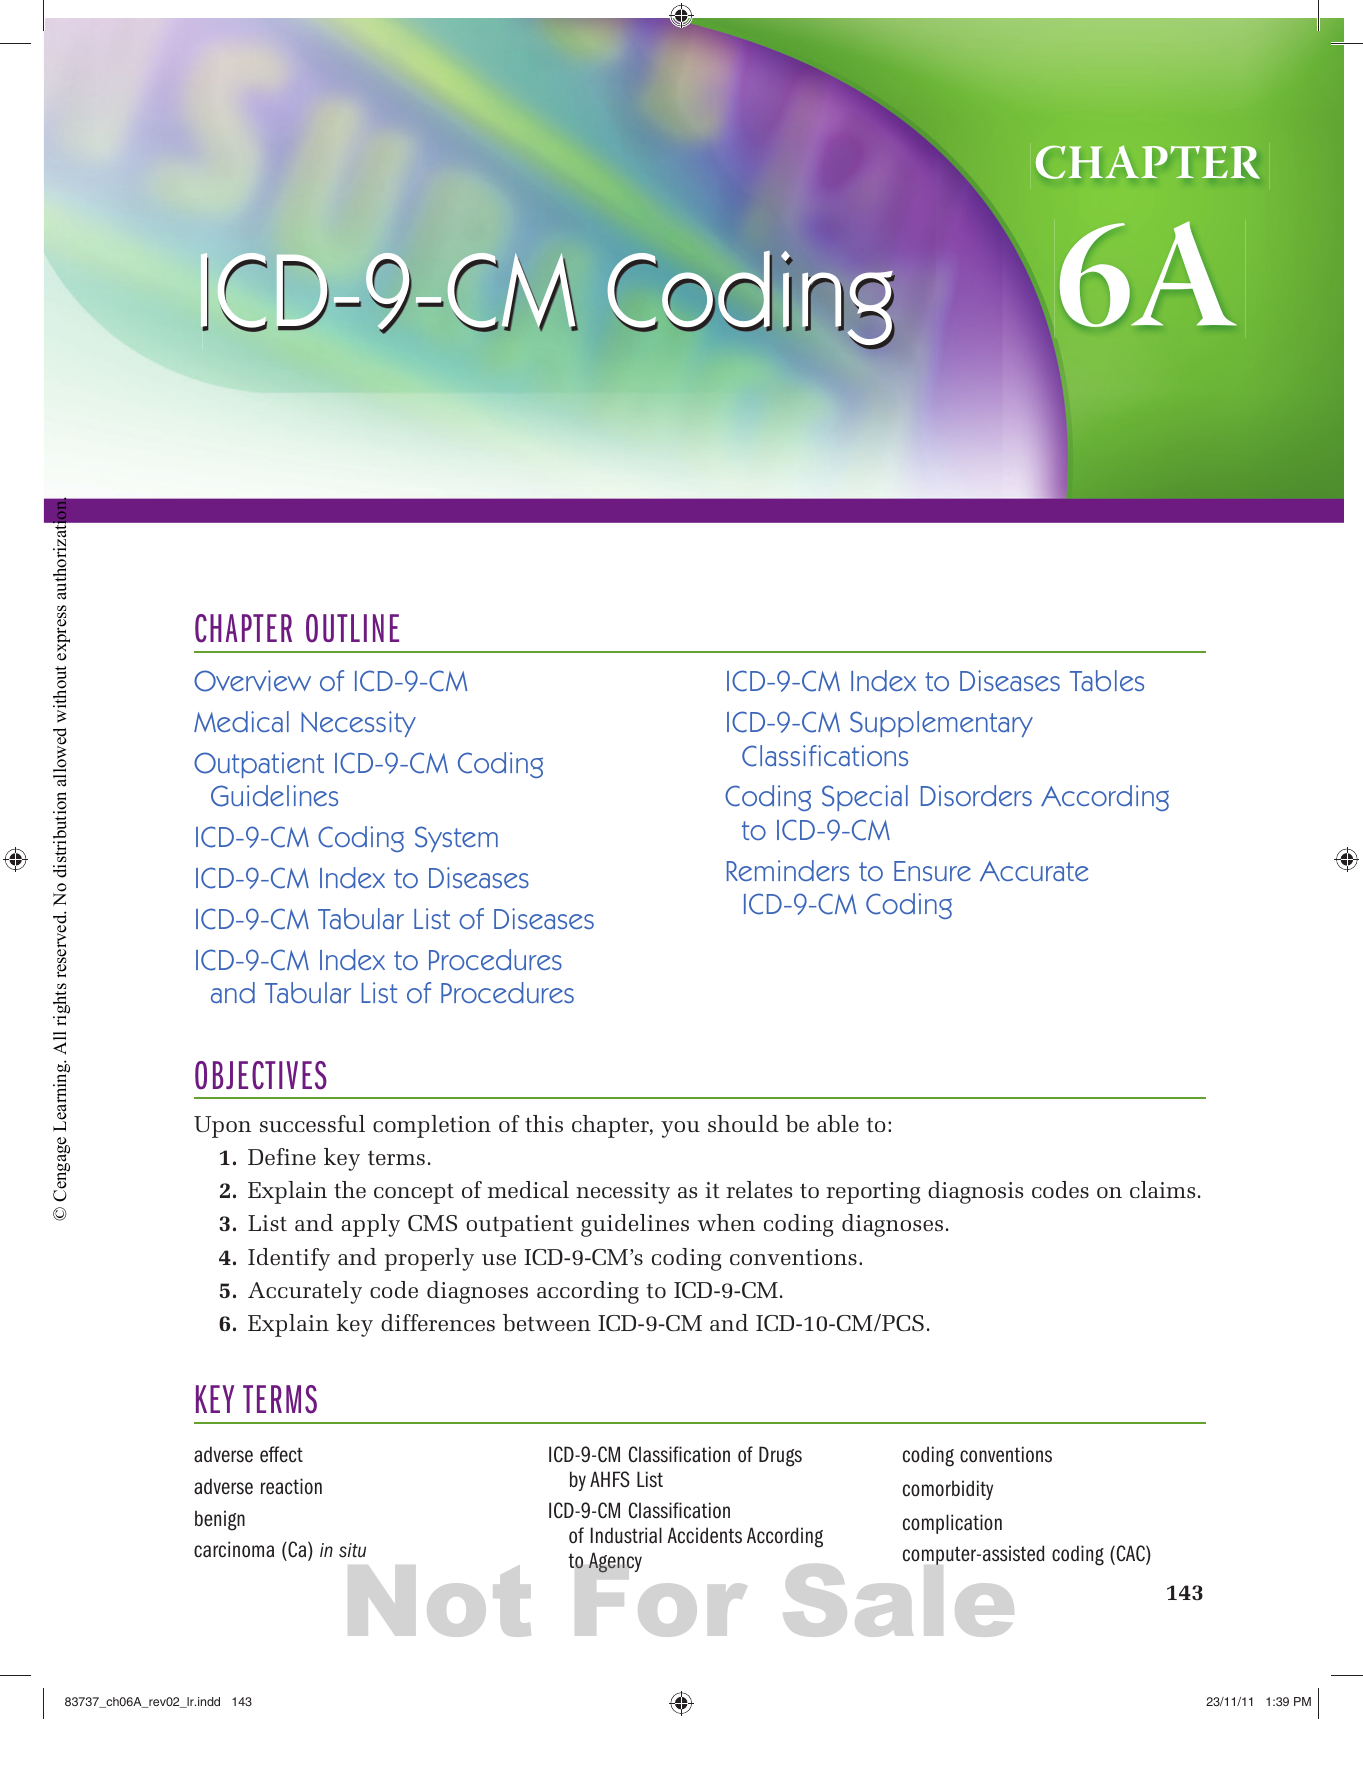 icd 10 cm code for right hip fracture